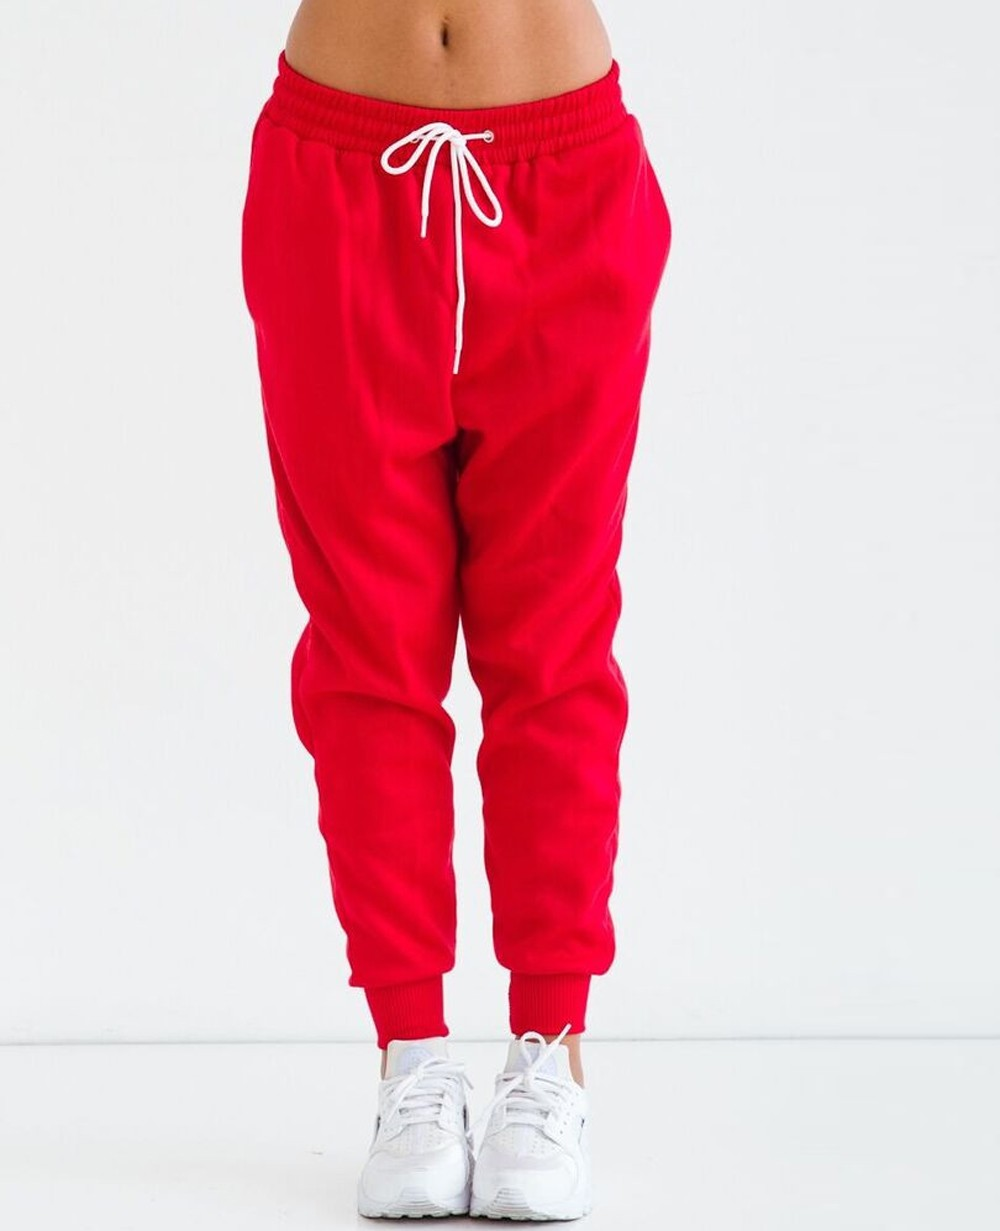 Red Crop Top and Joggers Sweatsuit for Women, R1 15004